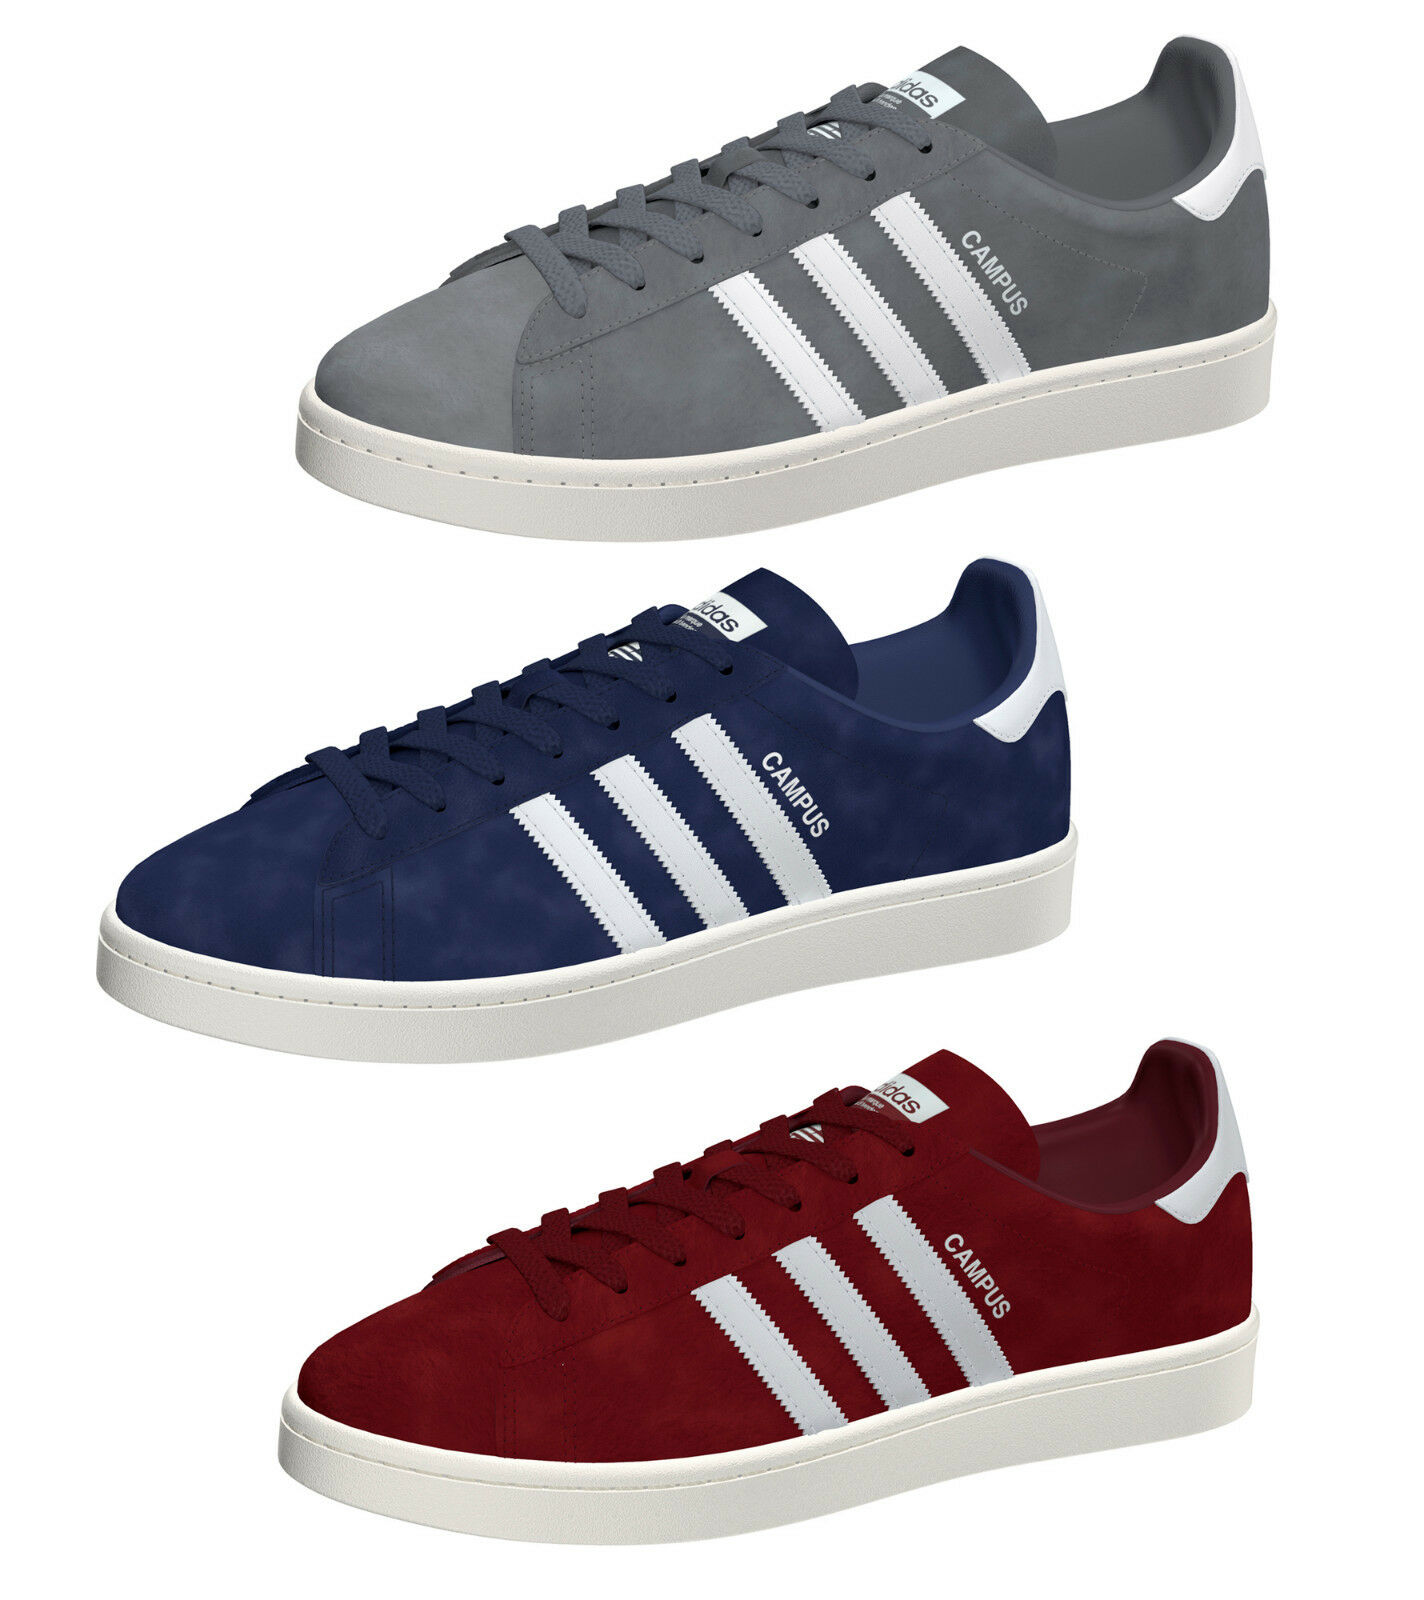 Gris Adidas Campus Zapatillas Azul Bordo Bz0086 Bz0085 Bz0087 New FKl1JTc